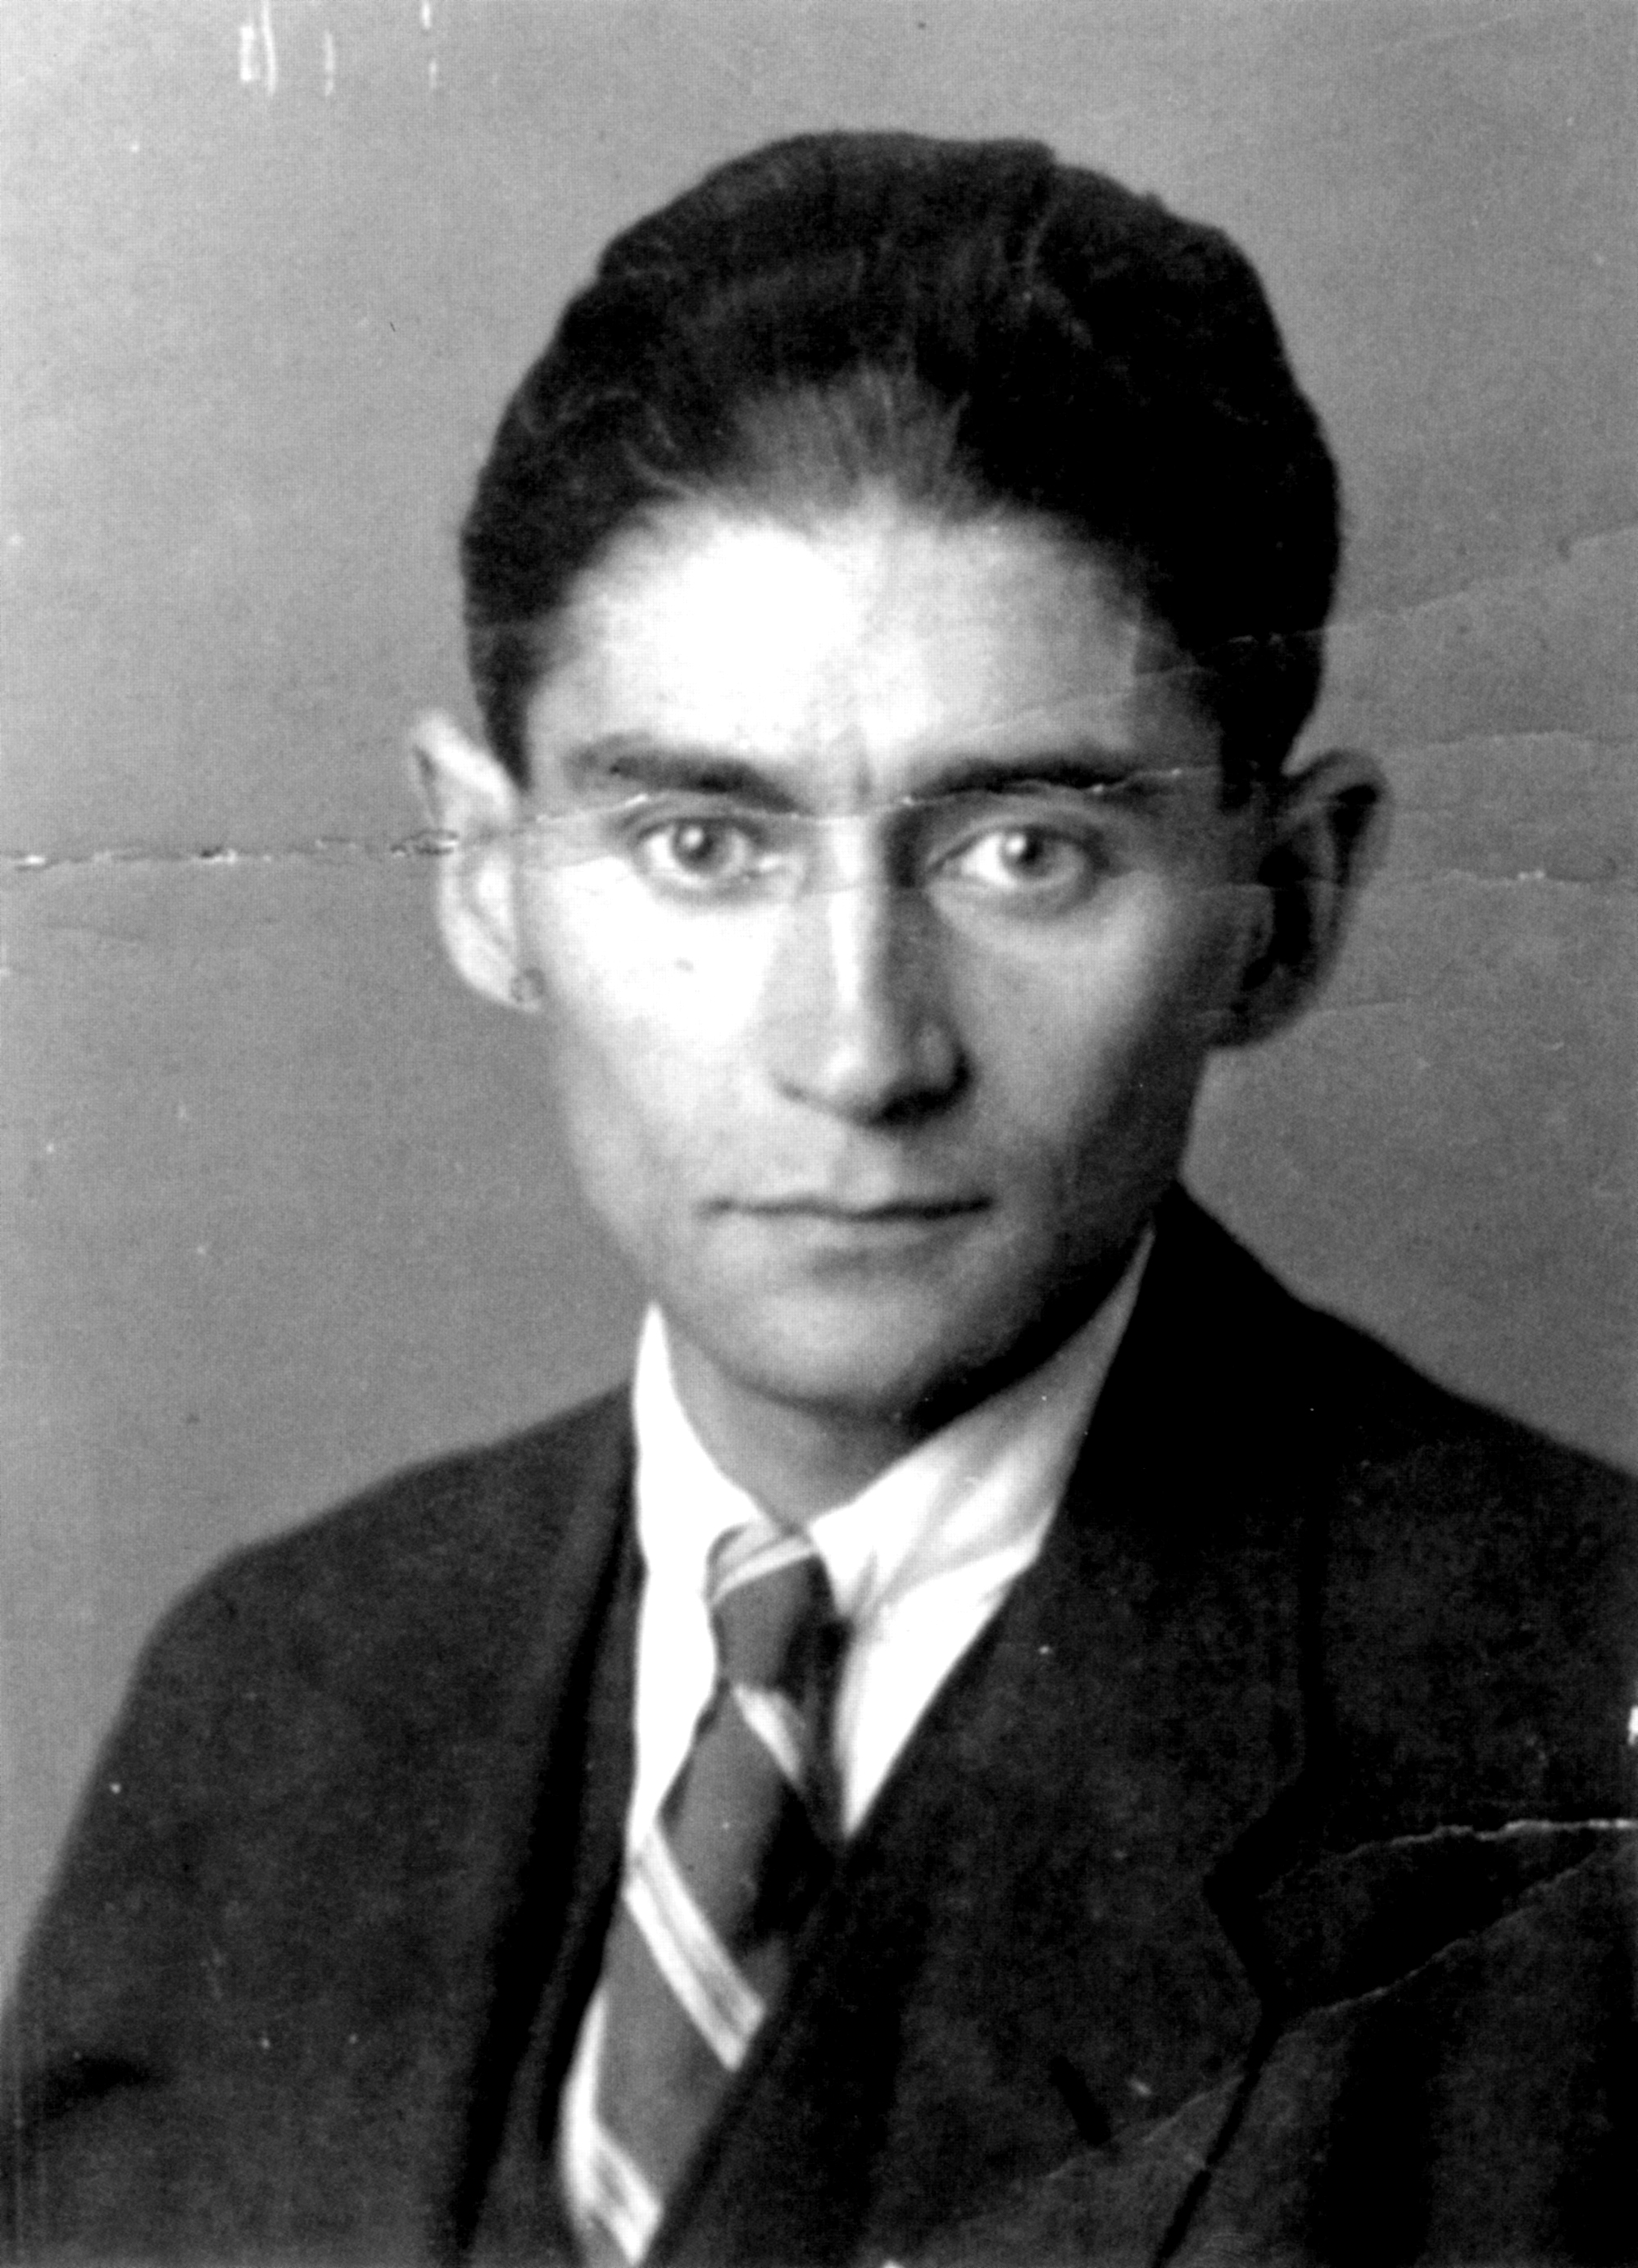 franz kafka biography essay The metamorphosis and the life of franz kafka essay kafka franz of biography a contains guide study metamorphosis the essays, literature questions.